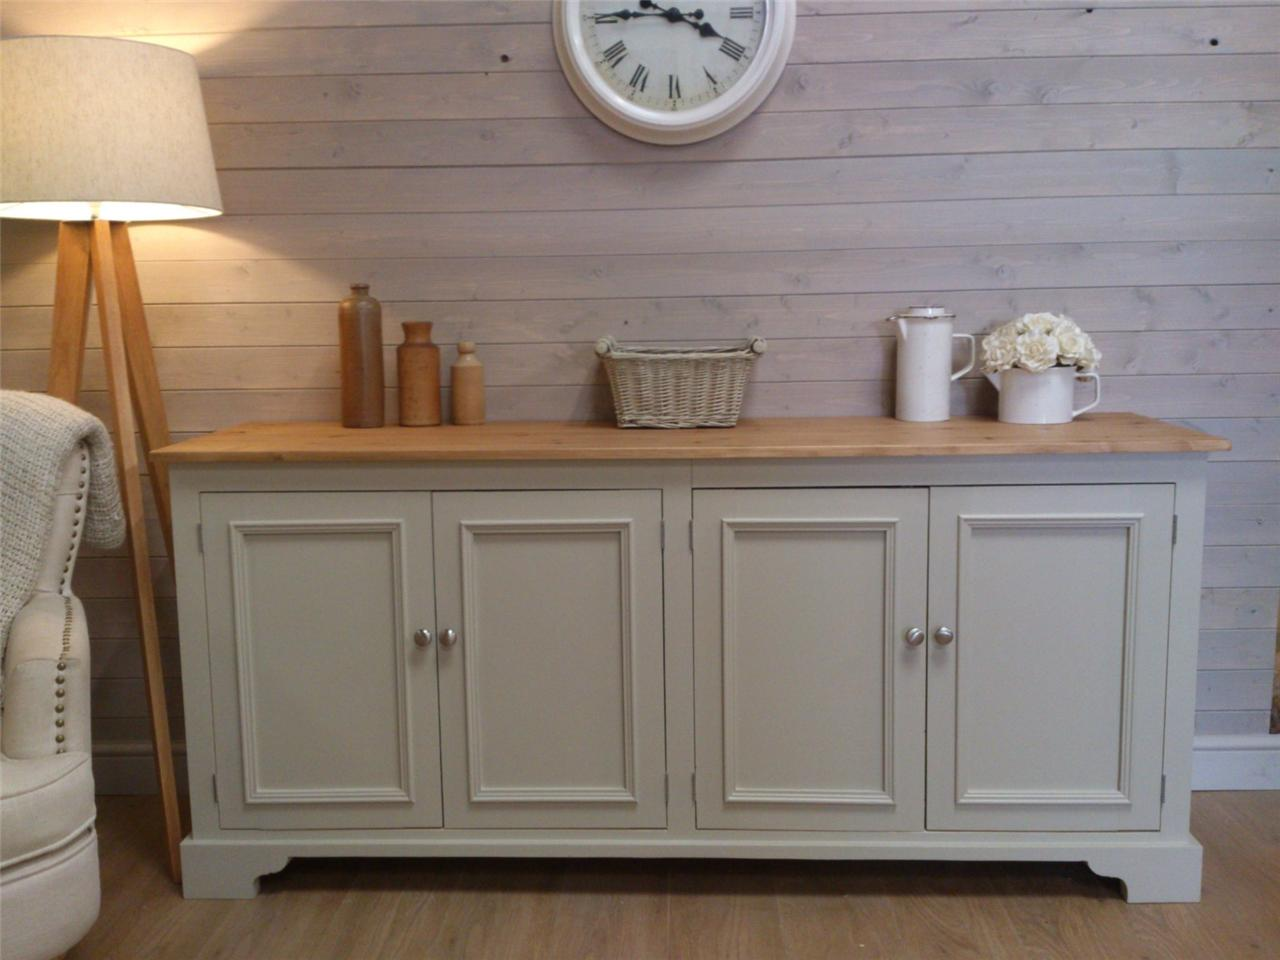 Solid Pine Sideboard Kitchen Unit Shabby Chic Painted Furniture F&Ball #986B33 1280 960 Sala Da Pranzo Shabby